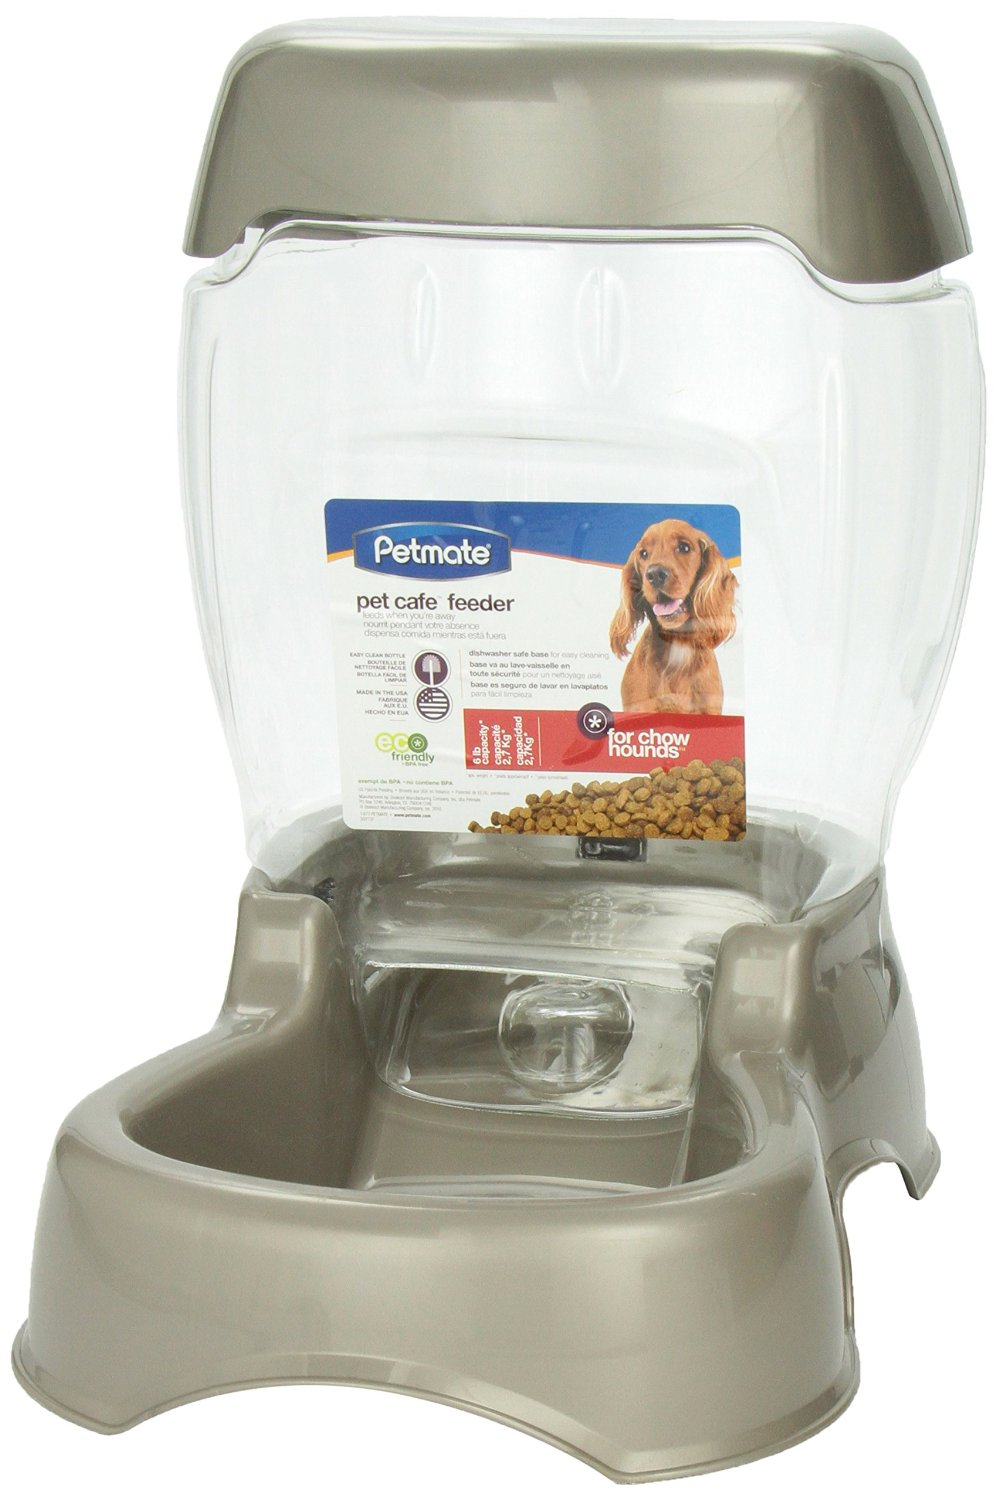 Petmate Pet Cafe Feeder - 6 lbs